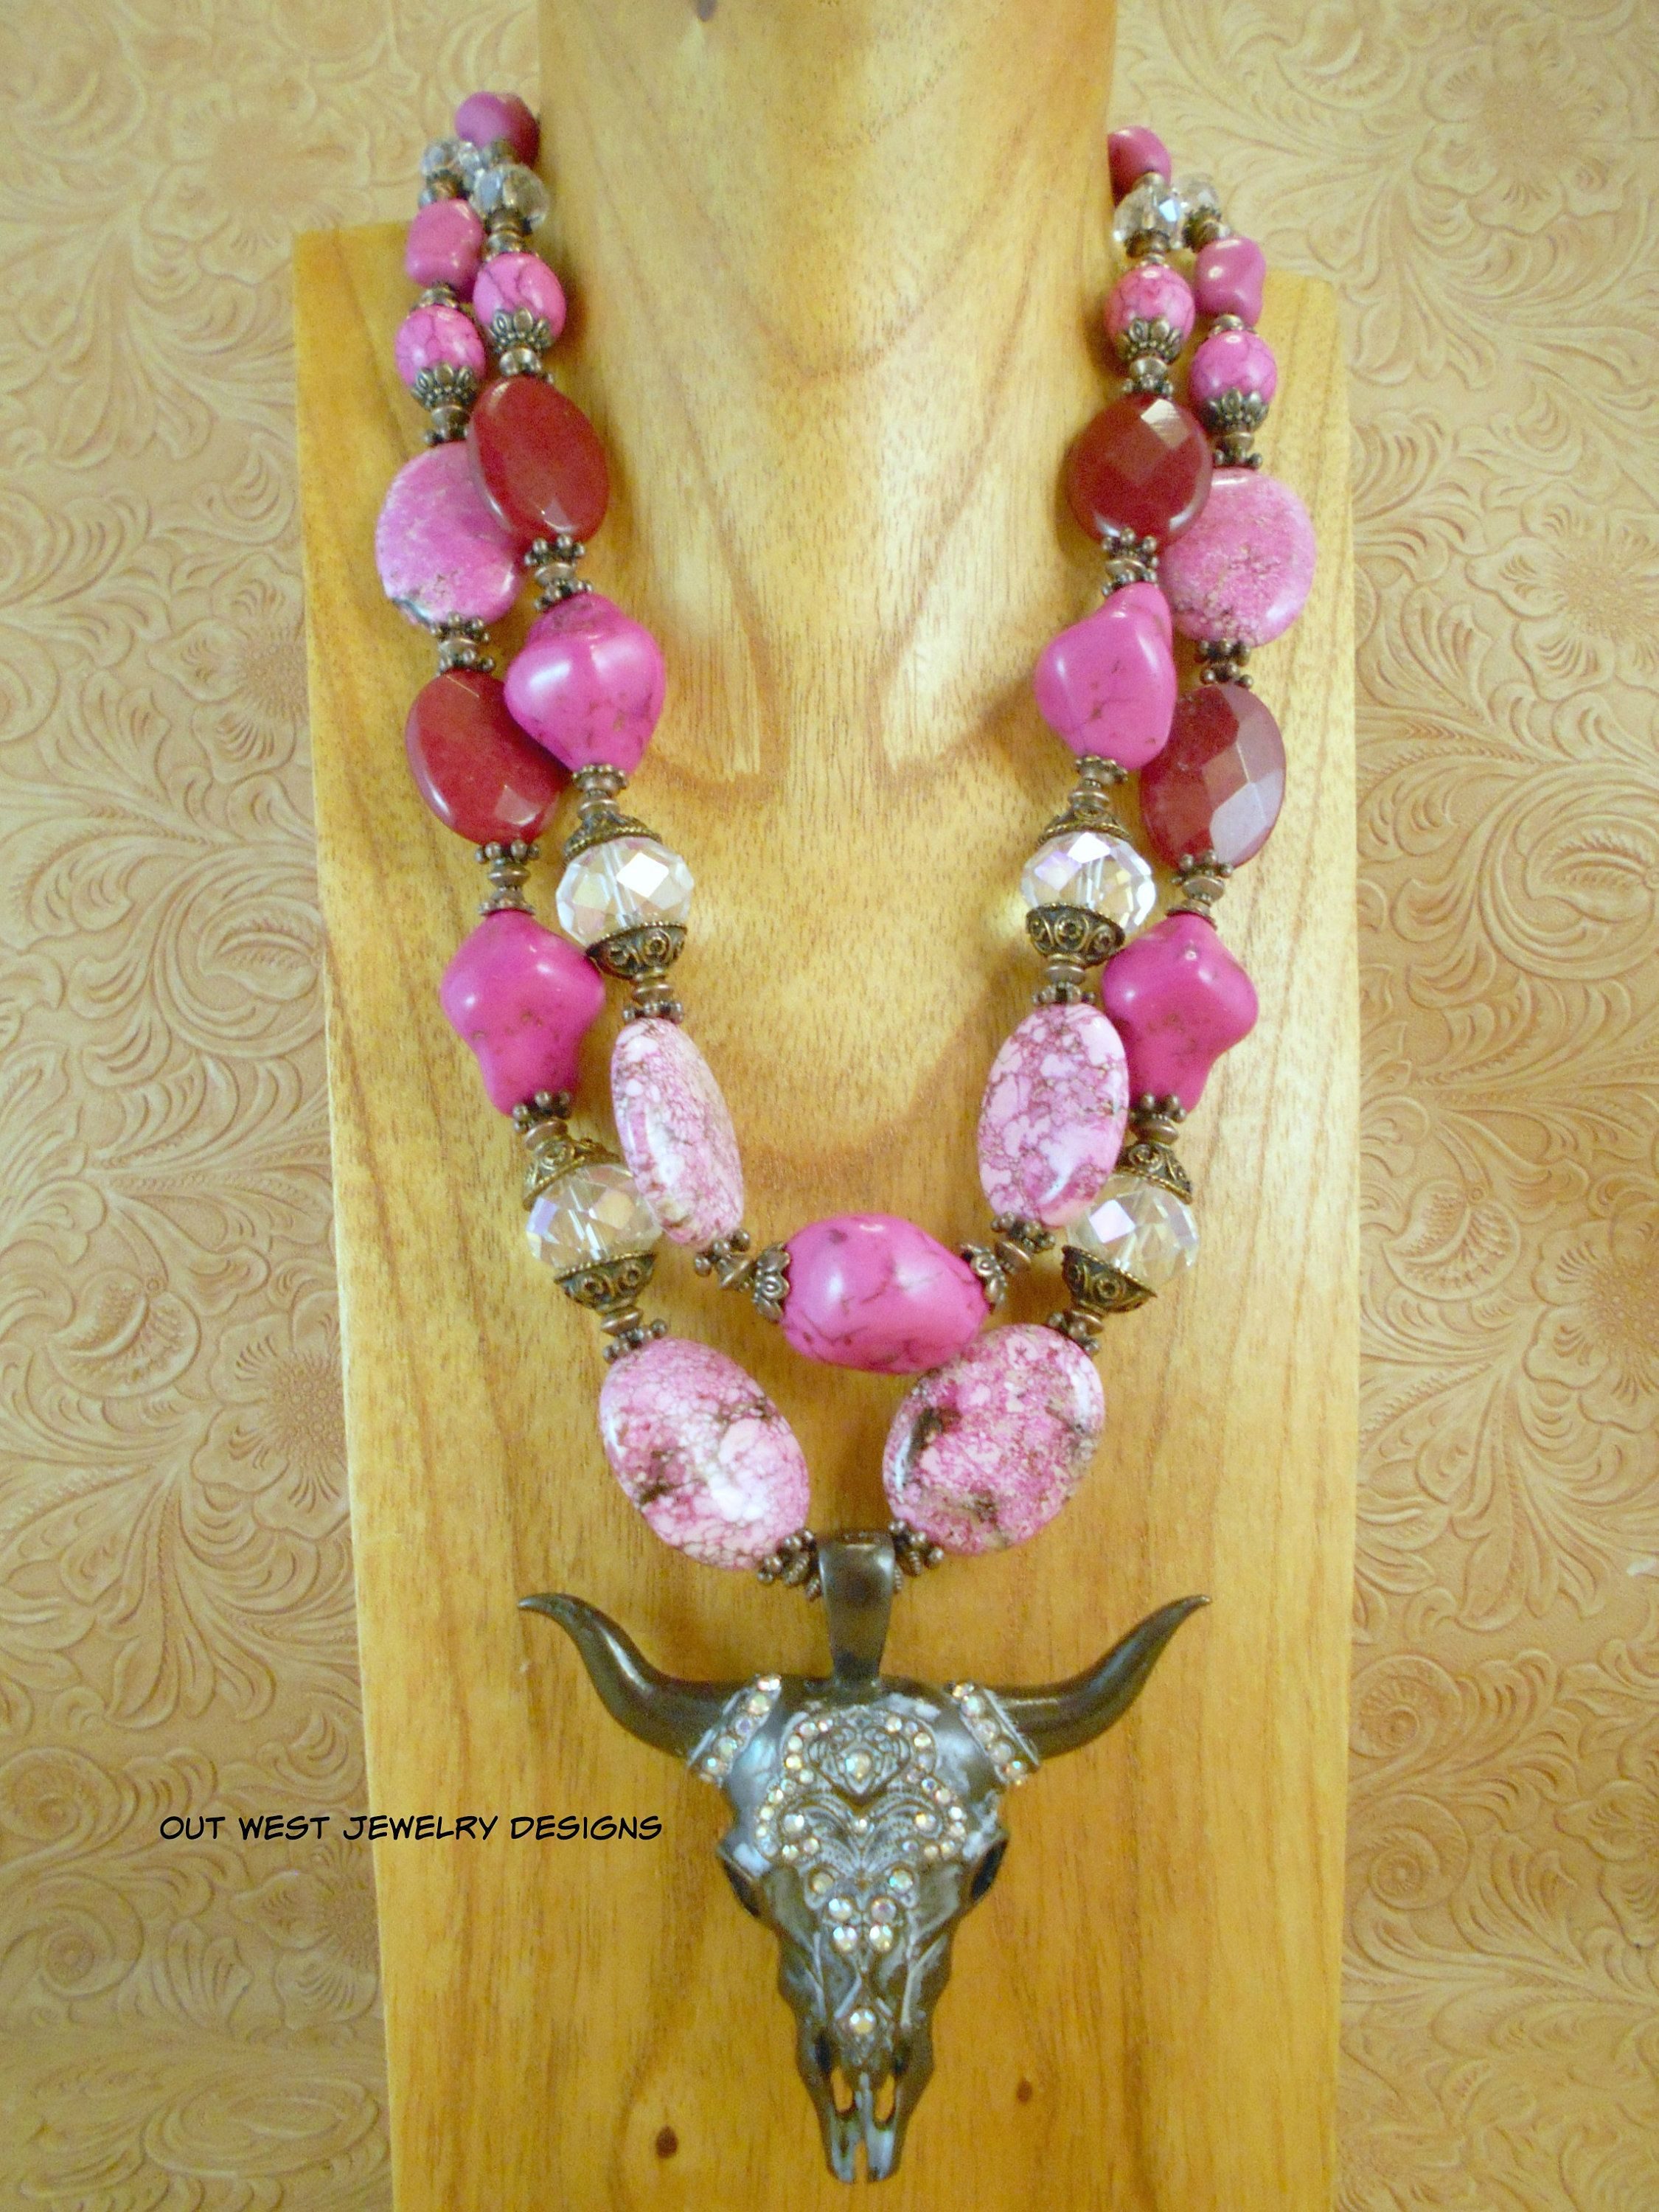 Fancy Crystal Pendant Cowgirls Night Out Western Statement Necklace Set Chunky White Howlite and Pale Sapphire Glass